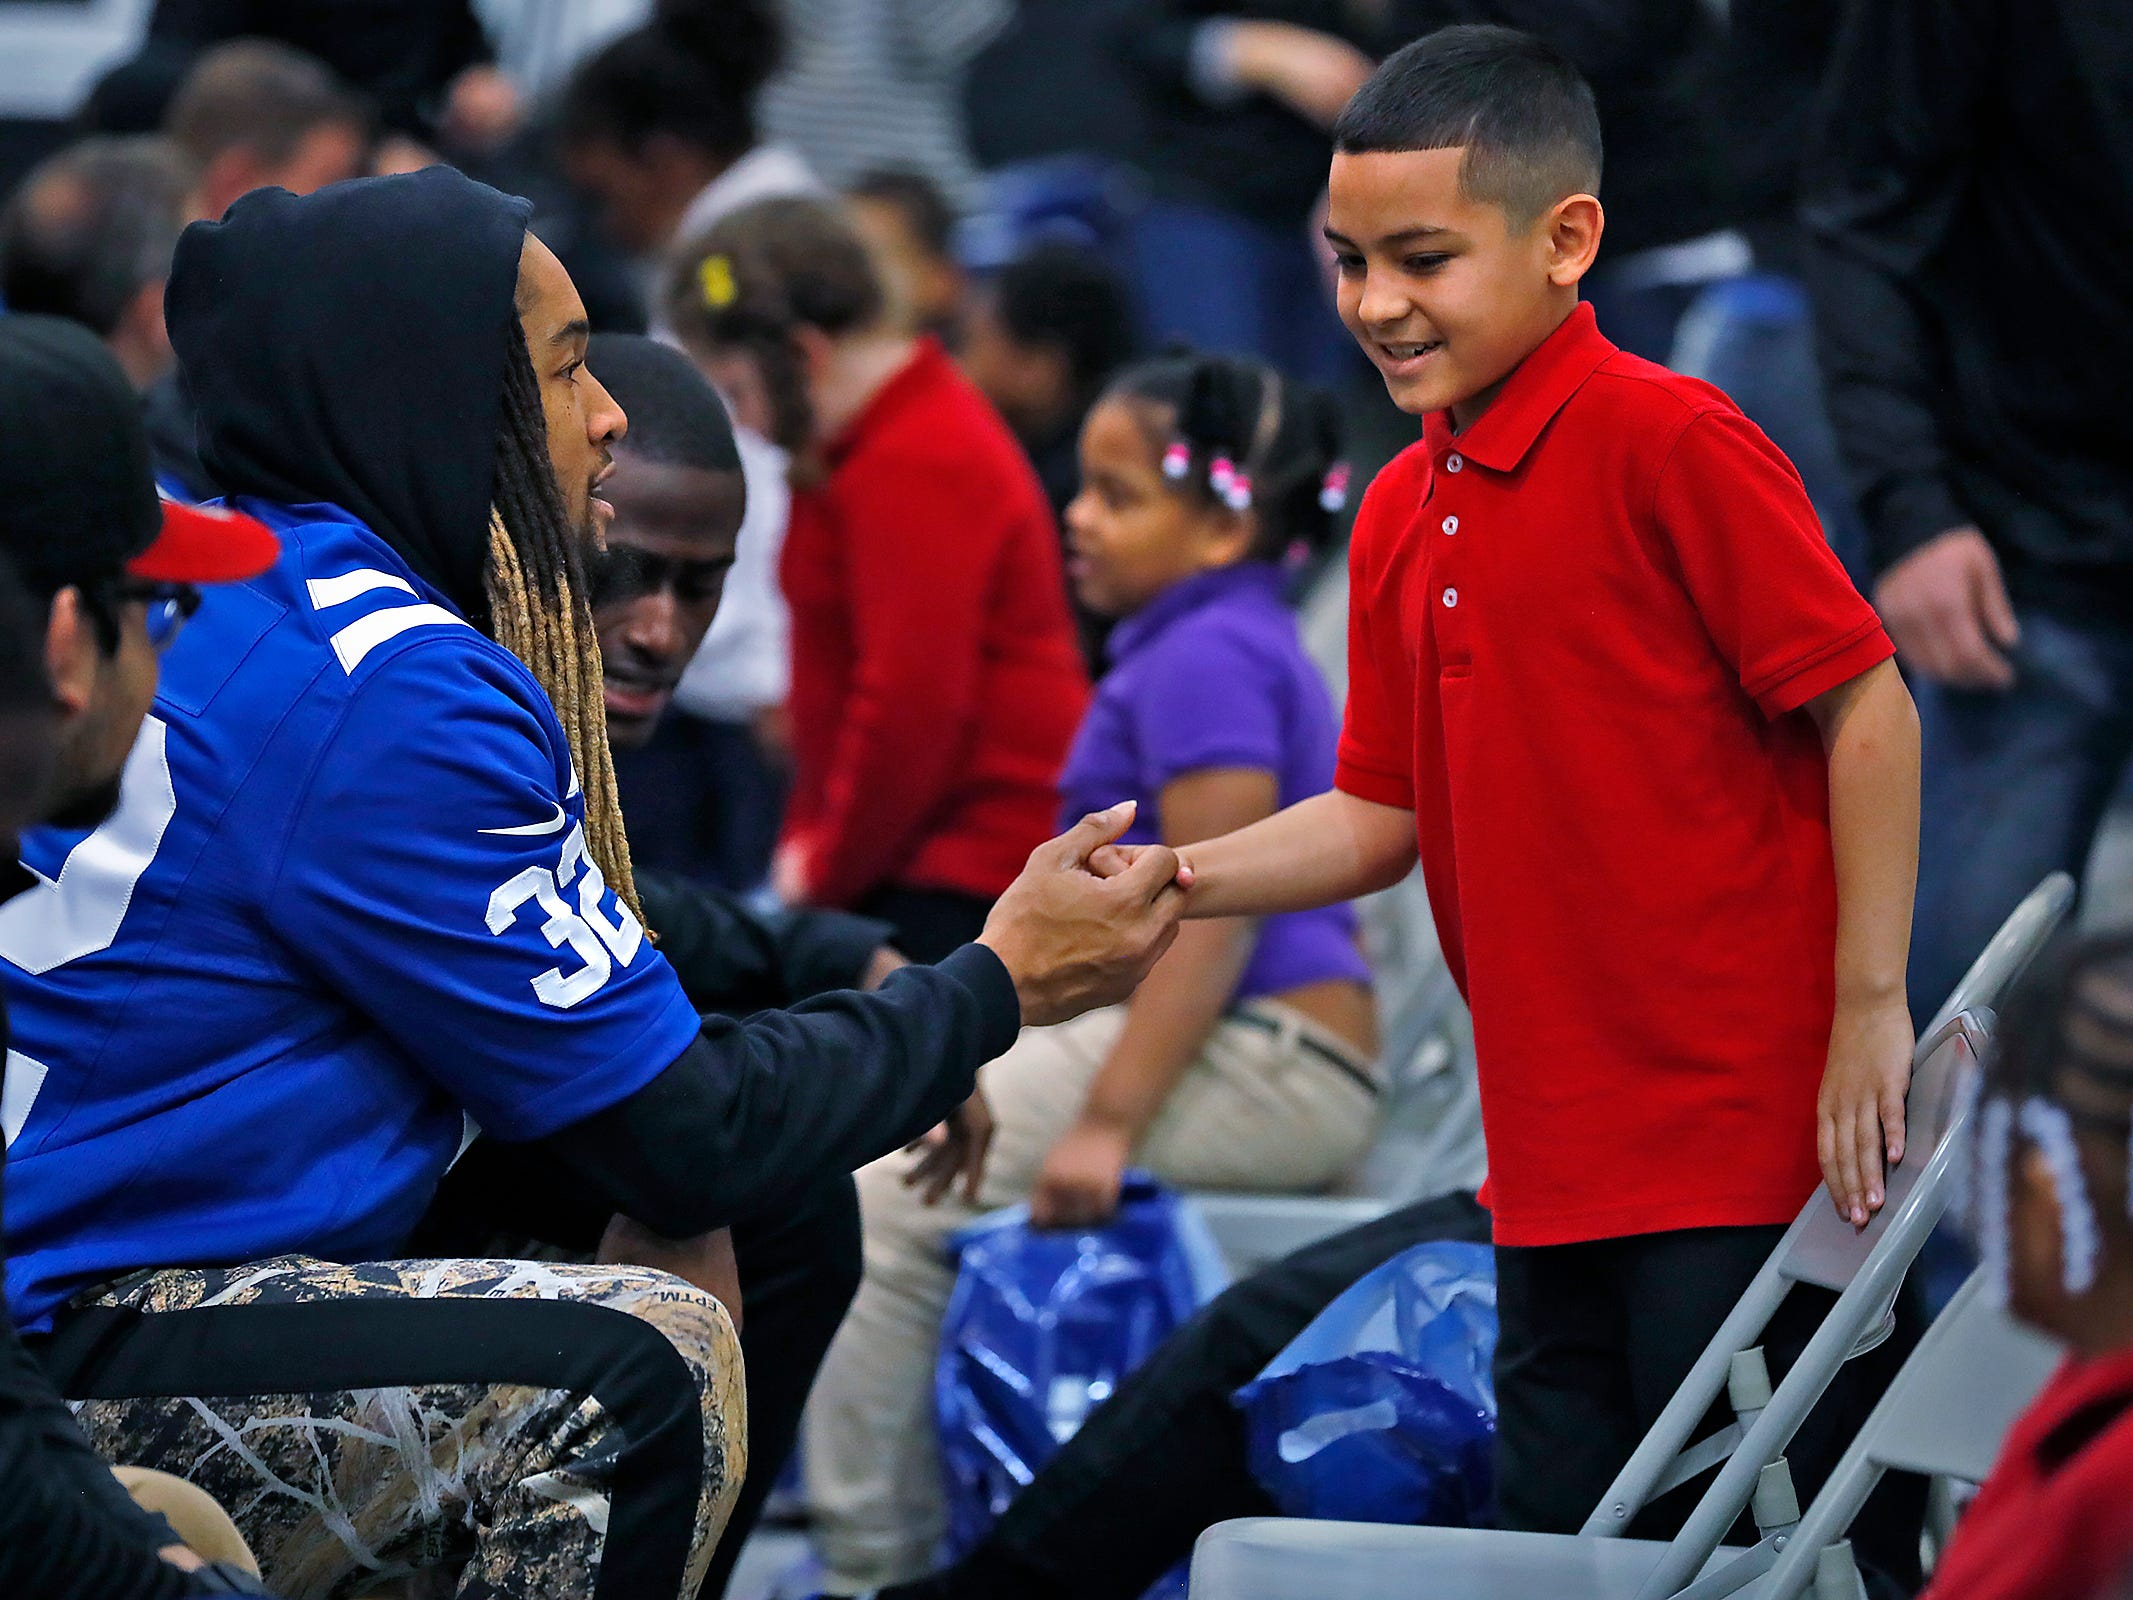 Indianapolis Colts' Jalen Collins shakes hands with Leland Calderon, right, before fitting him for new shoes at Brookside School 54, Monday, Dec. 3, 2018.  Colts players and staff joined as LIDS Sports and its parent company Genesco fit and gave new shoes, socks, hats, and snacks to students as part of the 13th annual Cold Feet, Warm Shoes event.